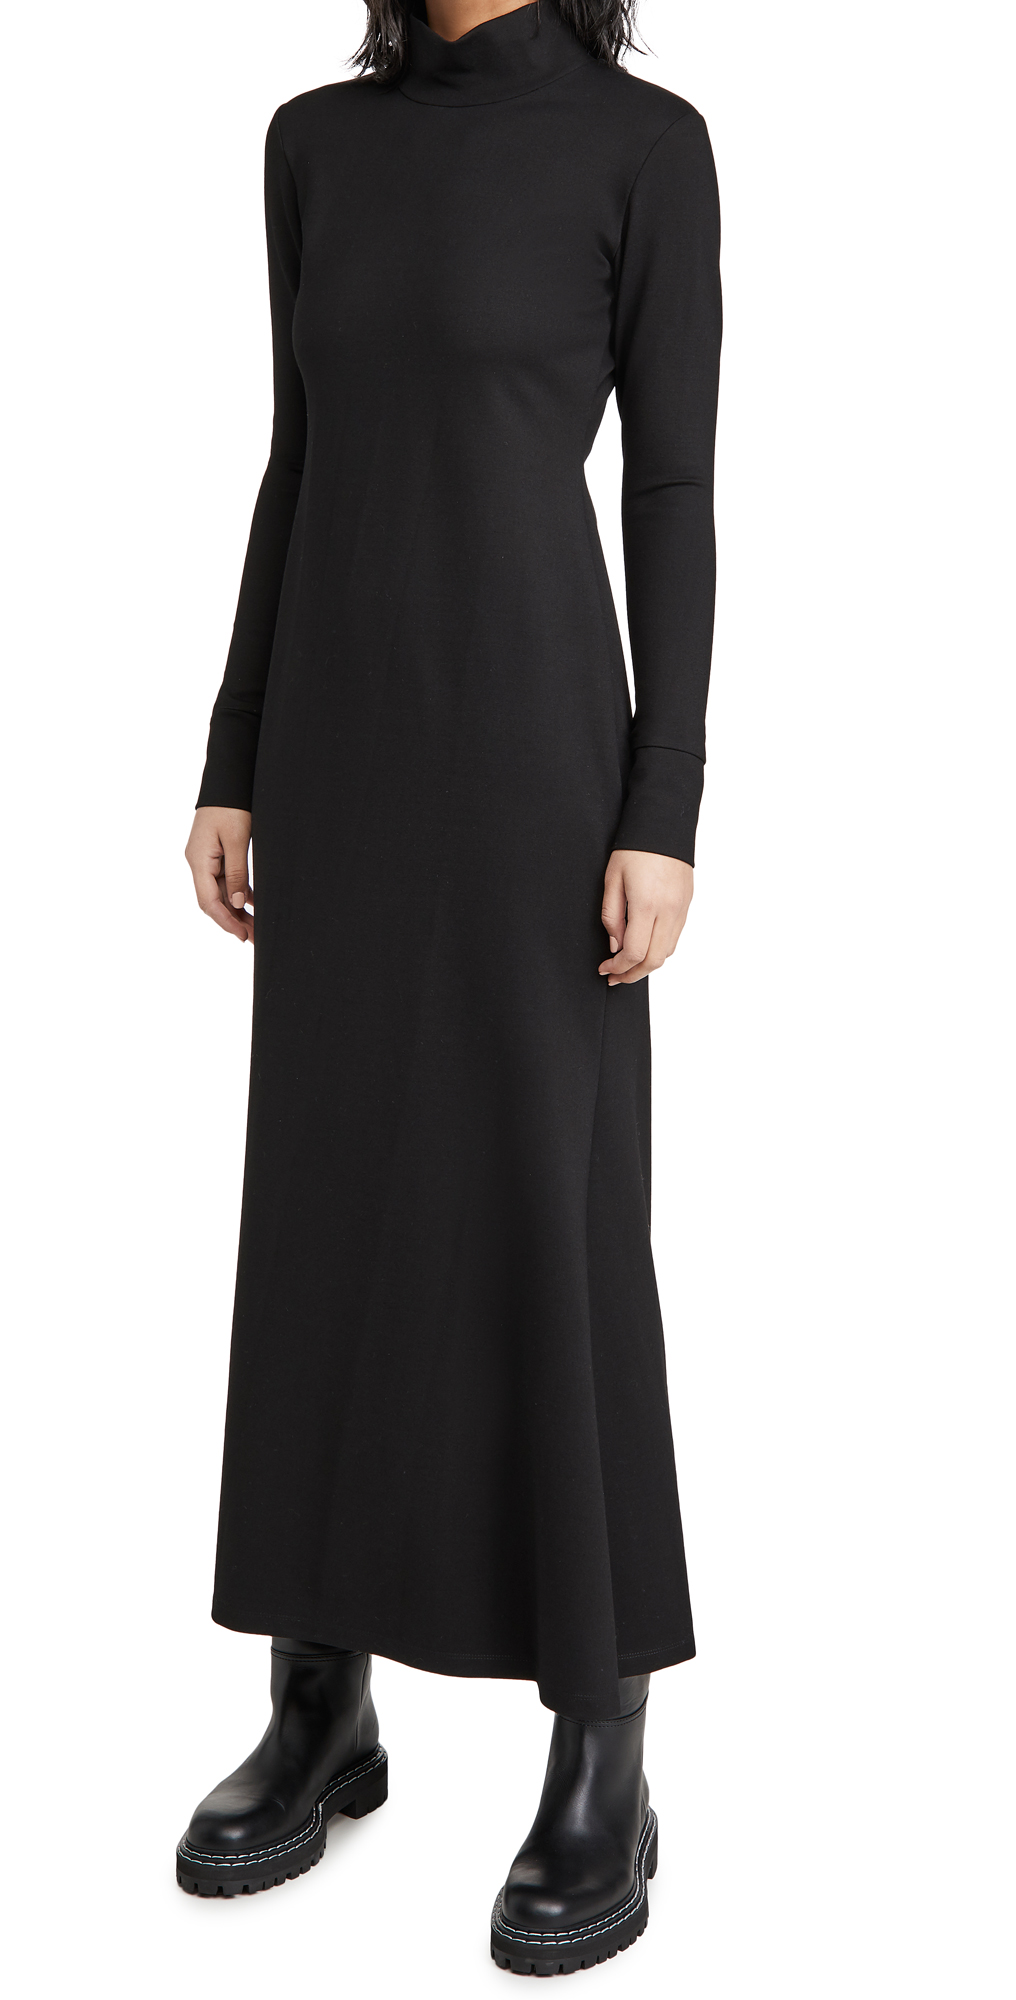 macgraw Silhouette Dress